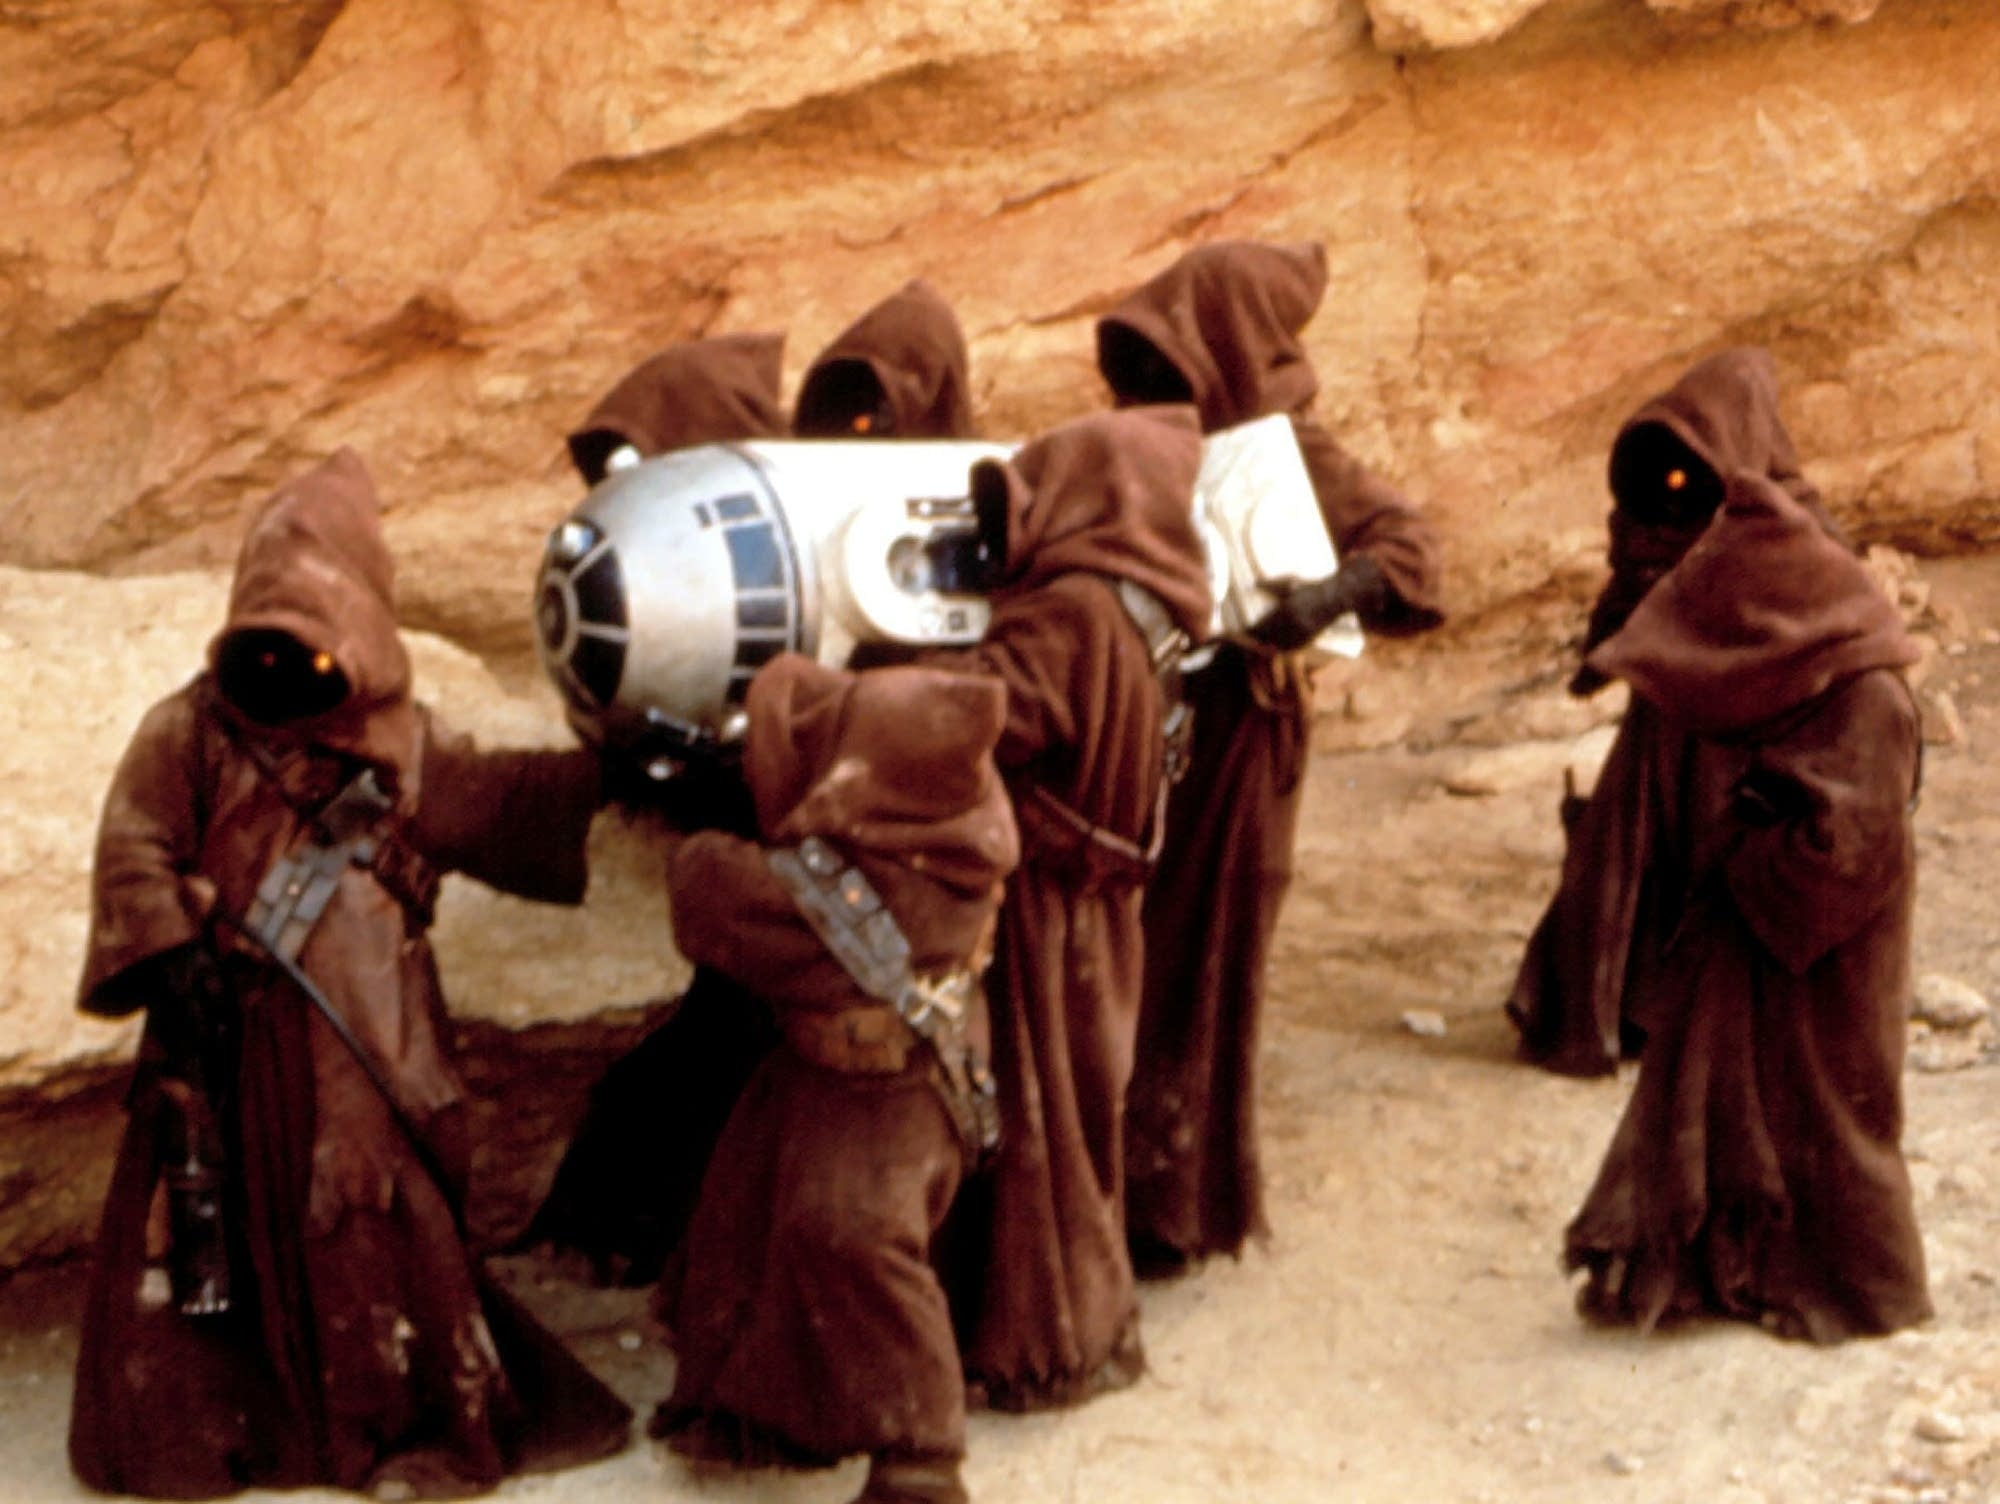 R2-D2 is carried by Jawas in 'Star Wars.'